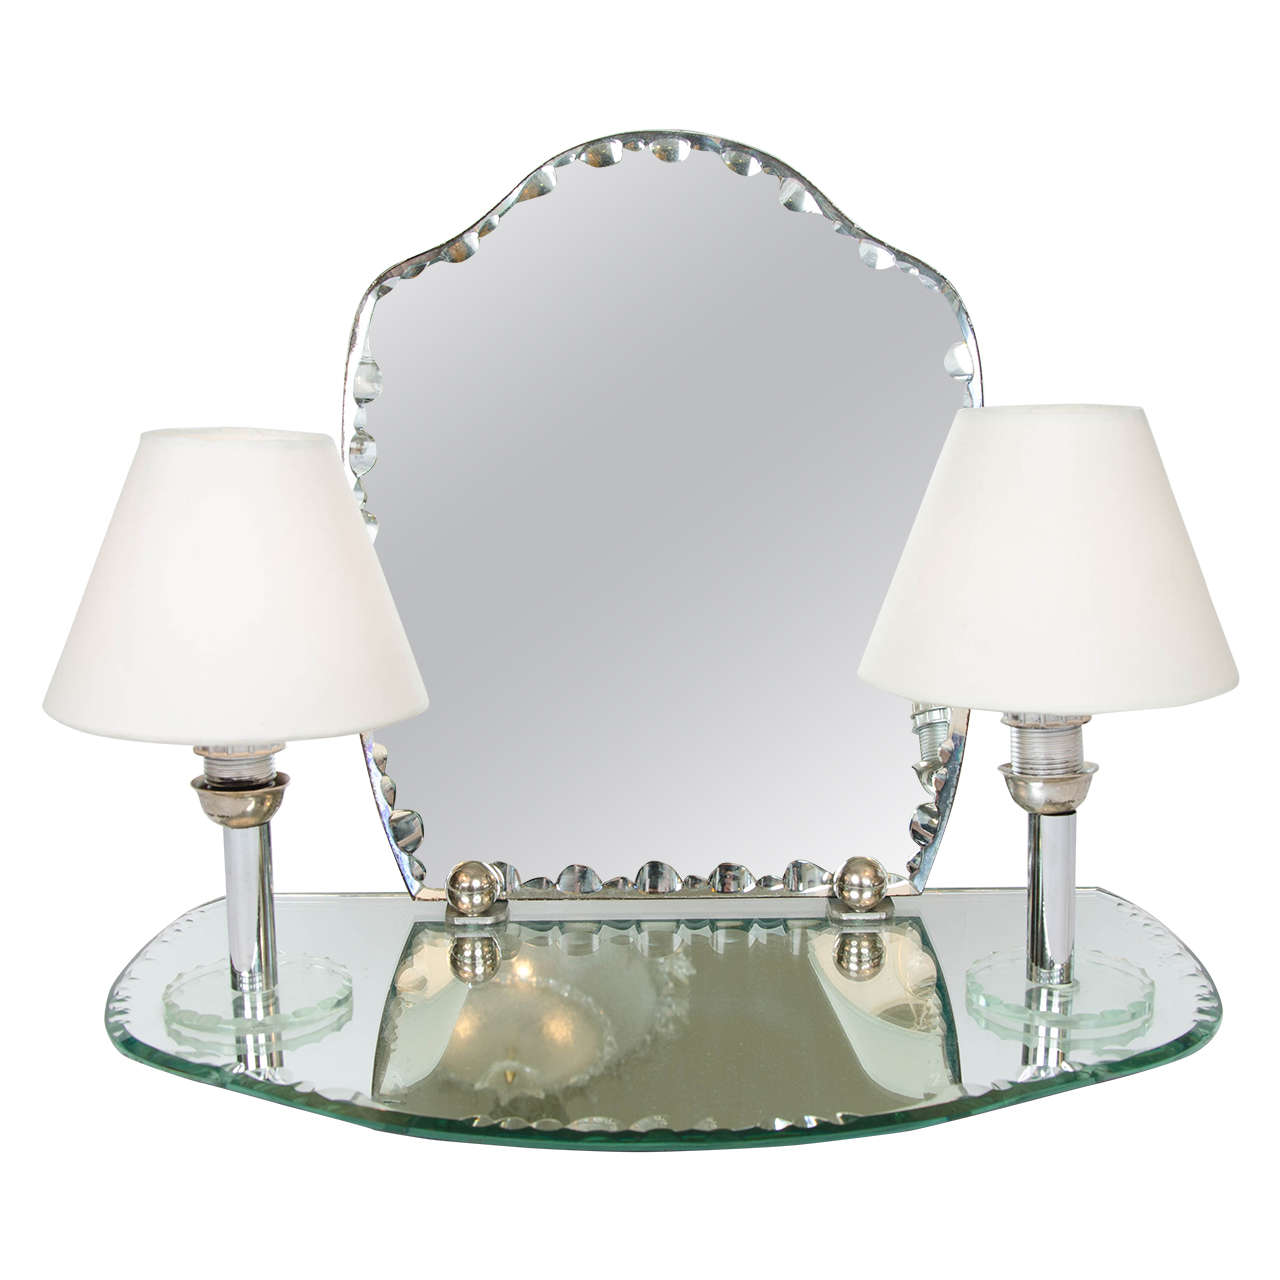 1950s dressing table mirror with integral lights at 1stdibs for Dressing table with lights